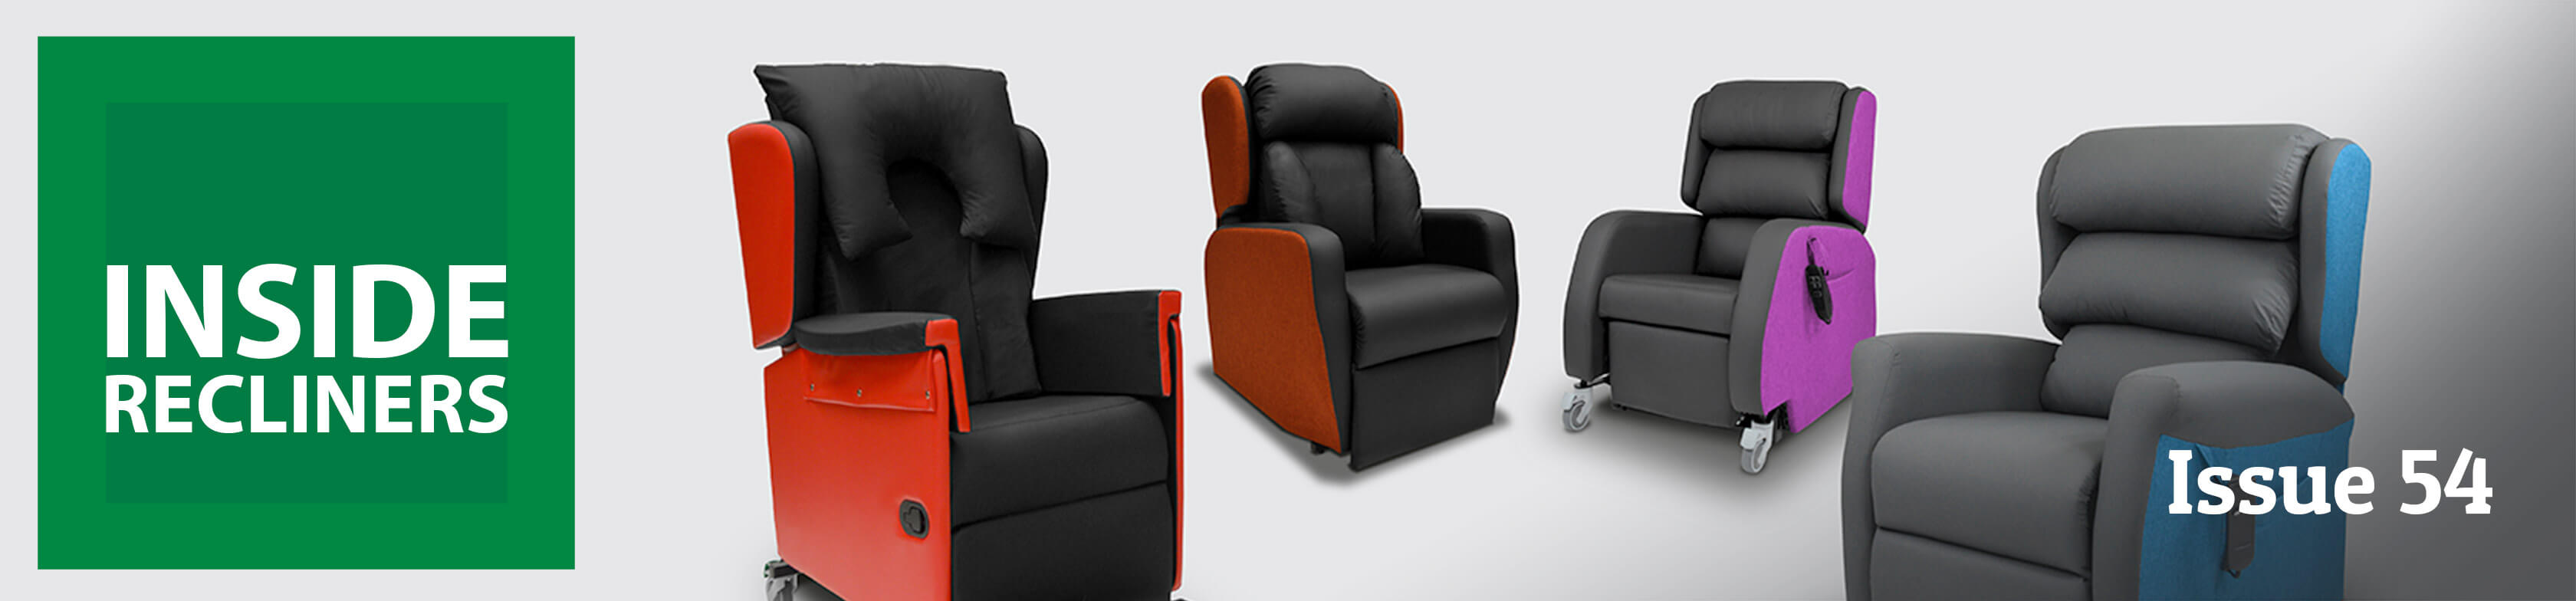 Inside Recliners — Issue 54